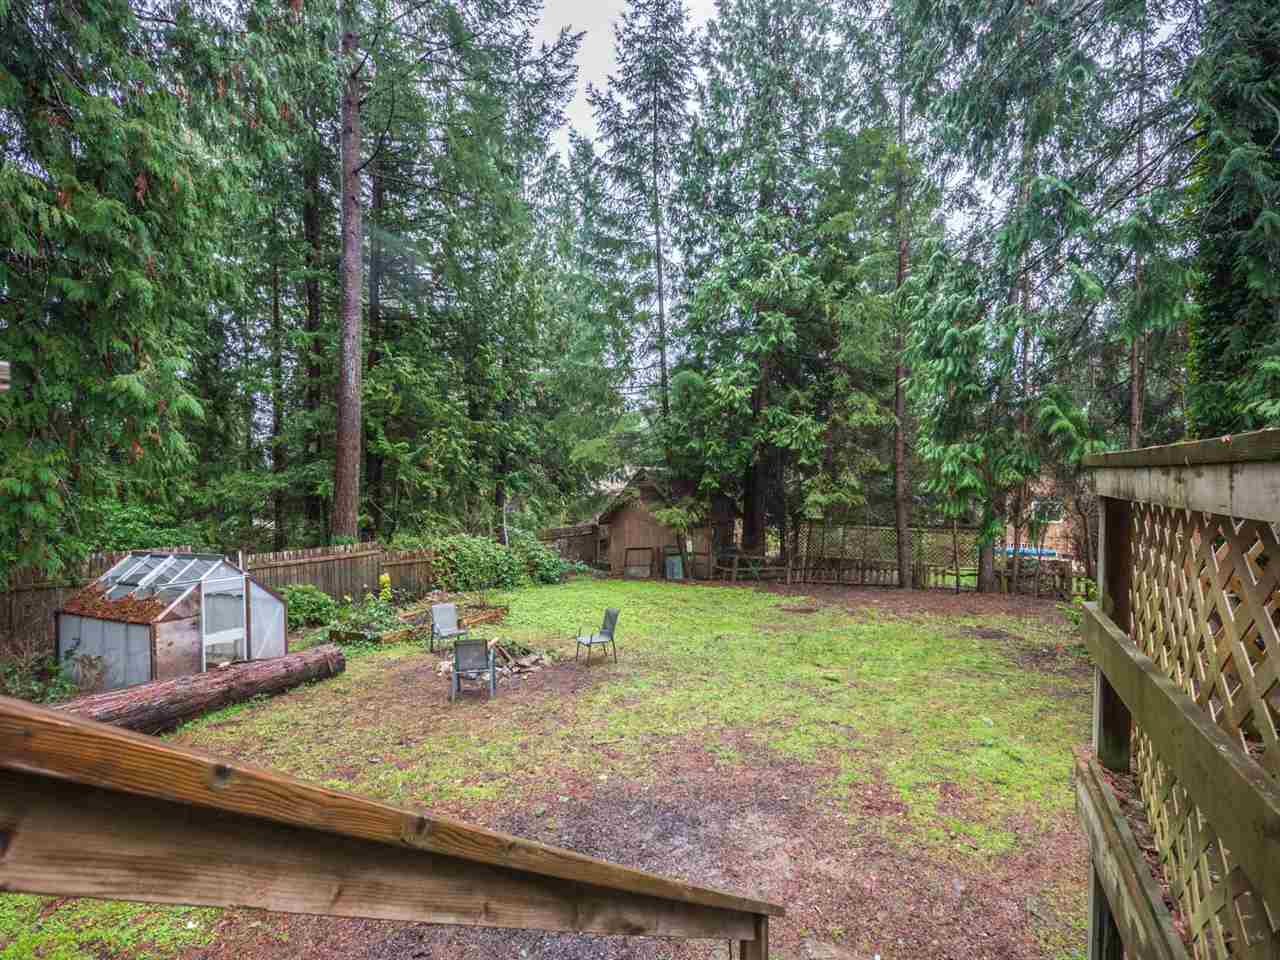 Photo 14: Photos: 5592 WAKEFIELD Road in Sechelt: Sechelt District Manufactured Home for sale (Sunshine Coast)  : MLS®# R2230720